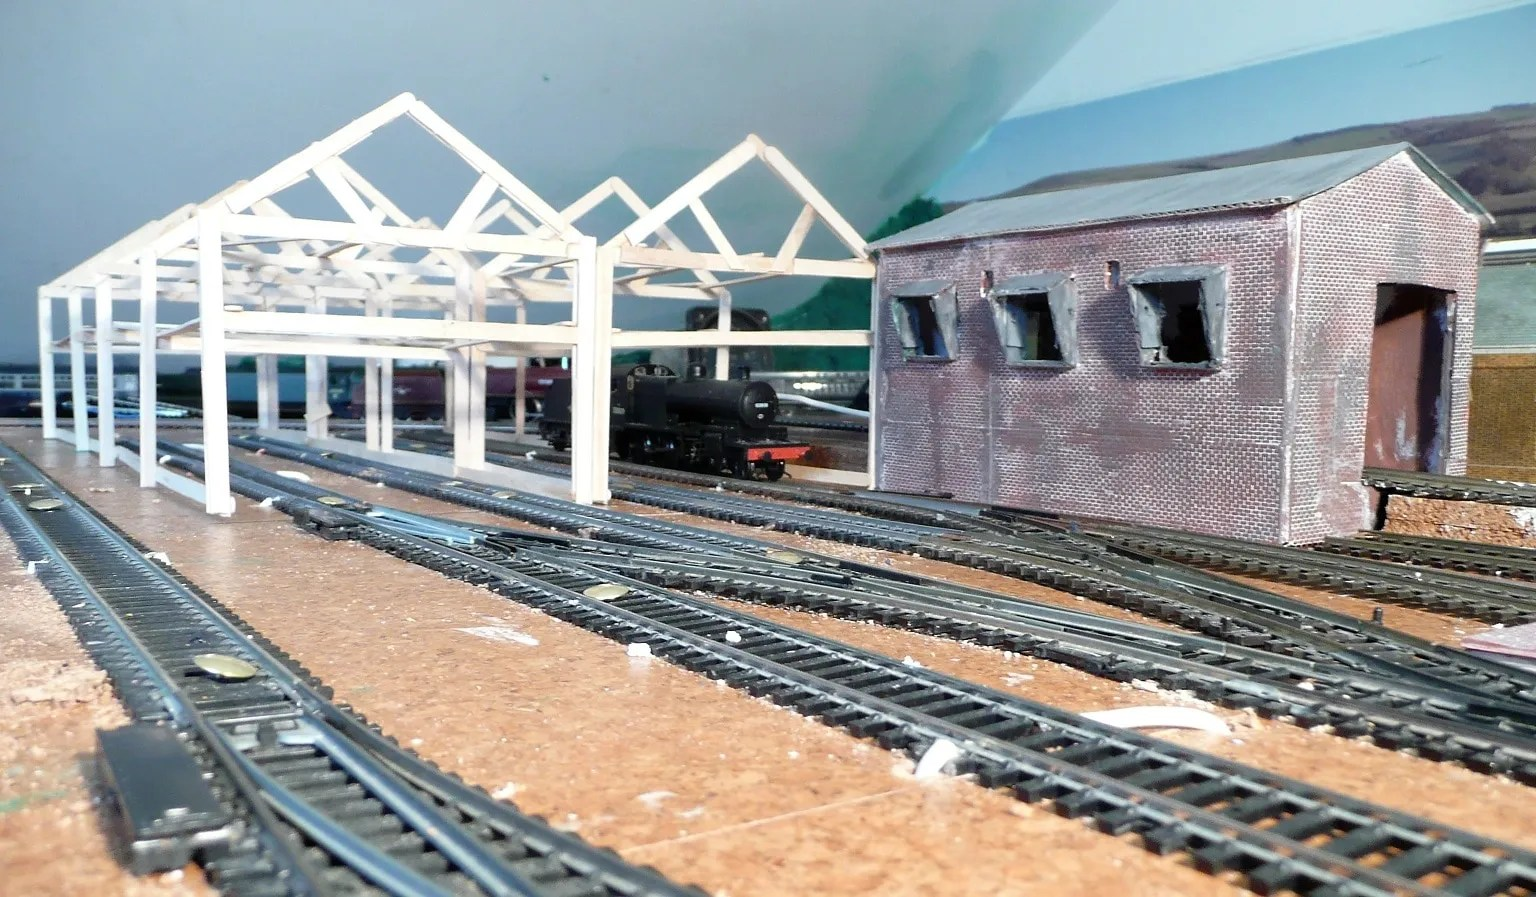 Positioning of the model railway 00 gauge shed on site